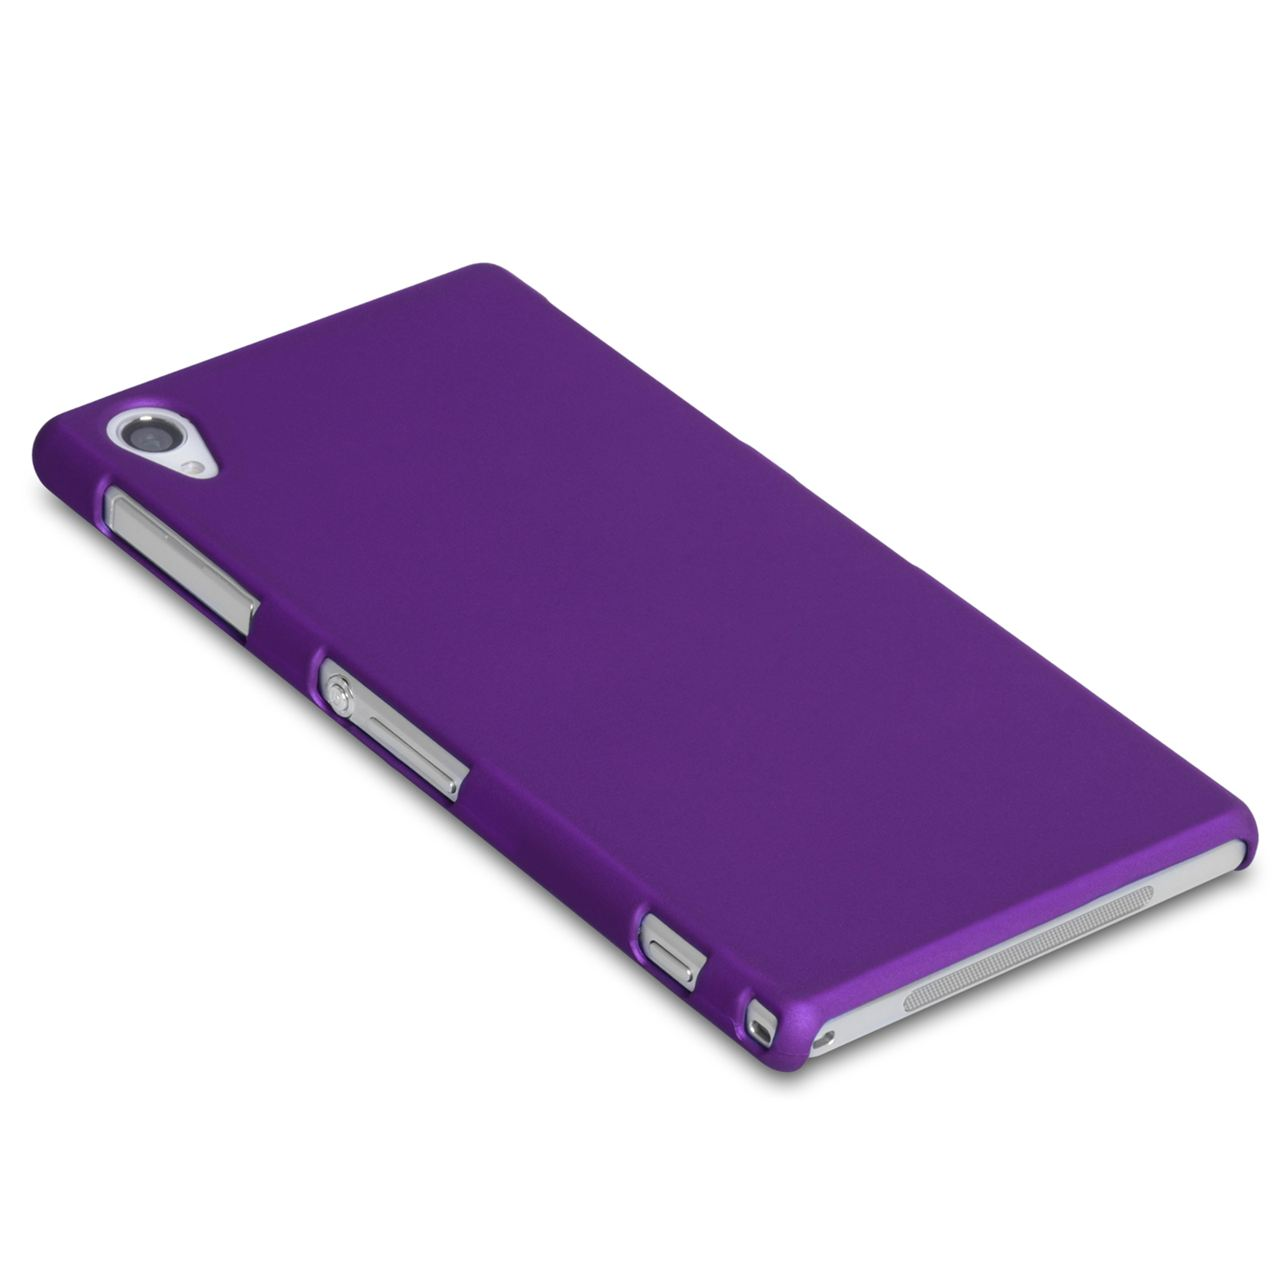 YouSave Accessories Sony Xperia Z1 Hard Hybrid Case - Purple